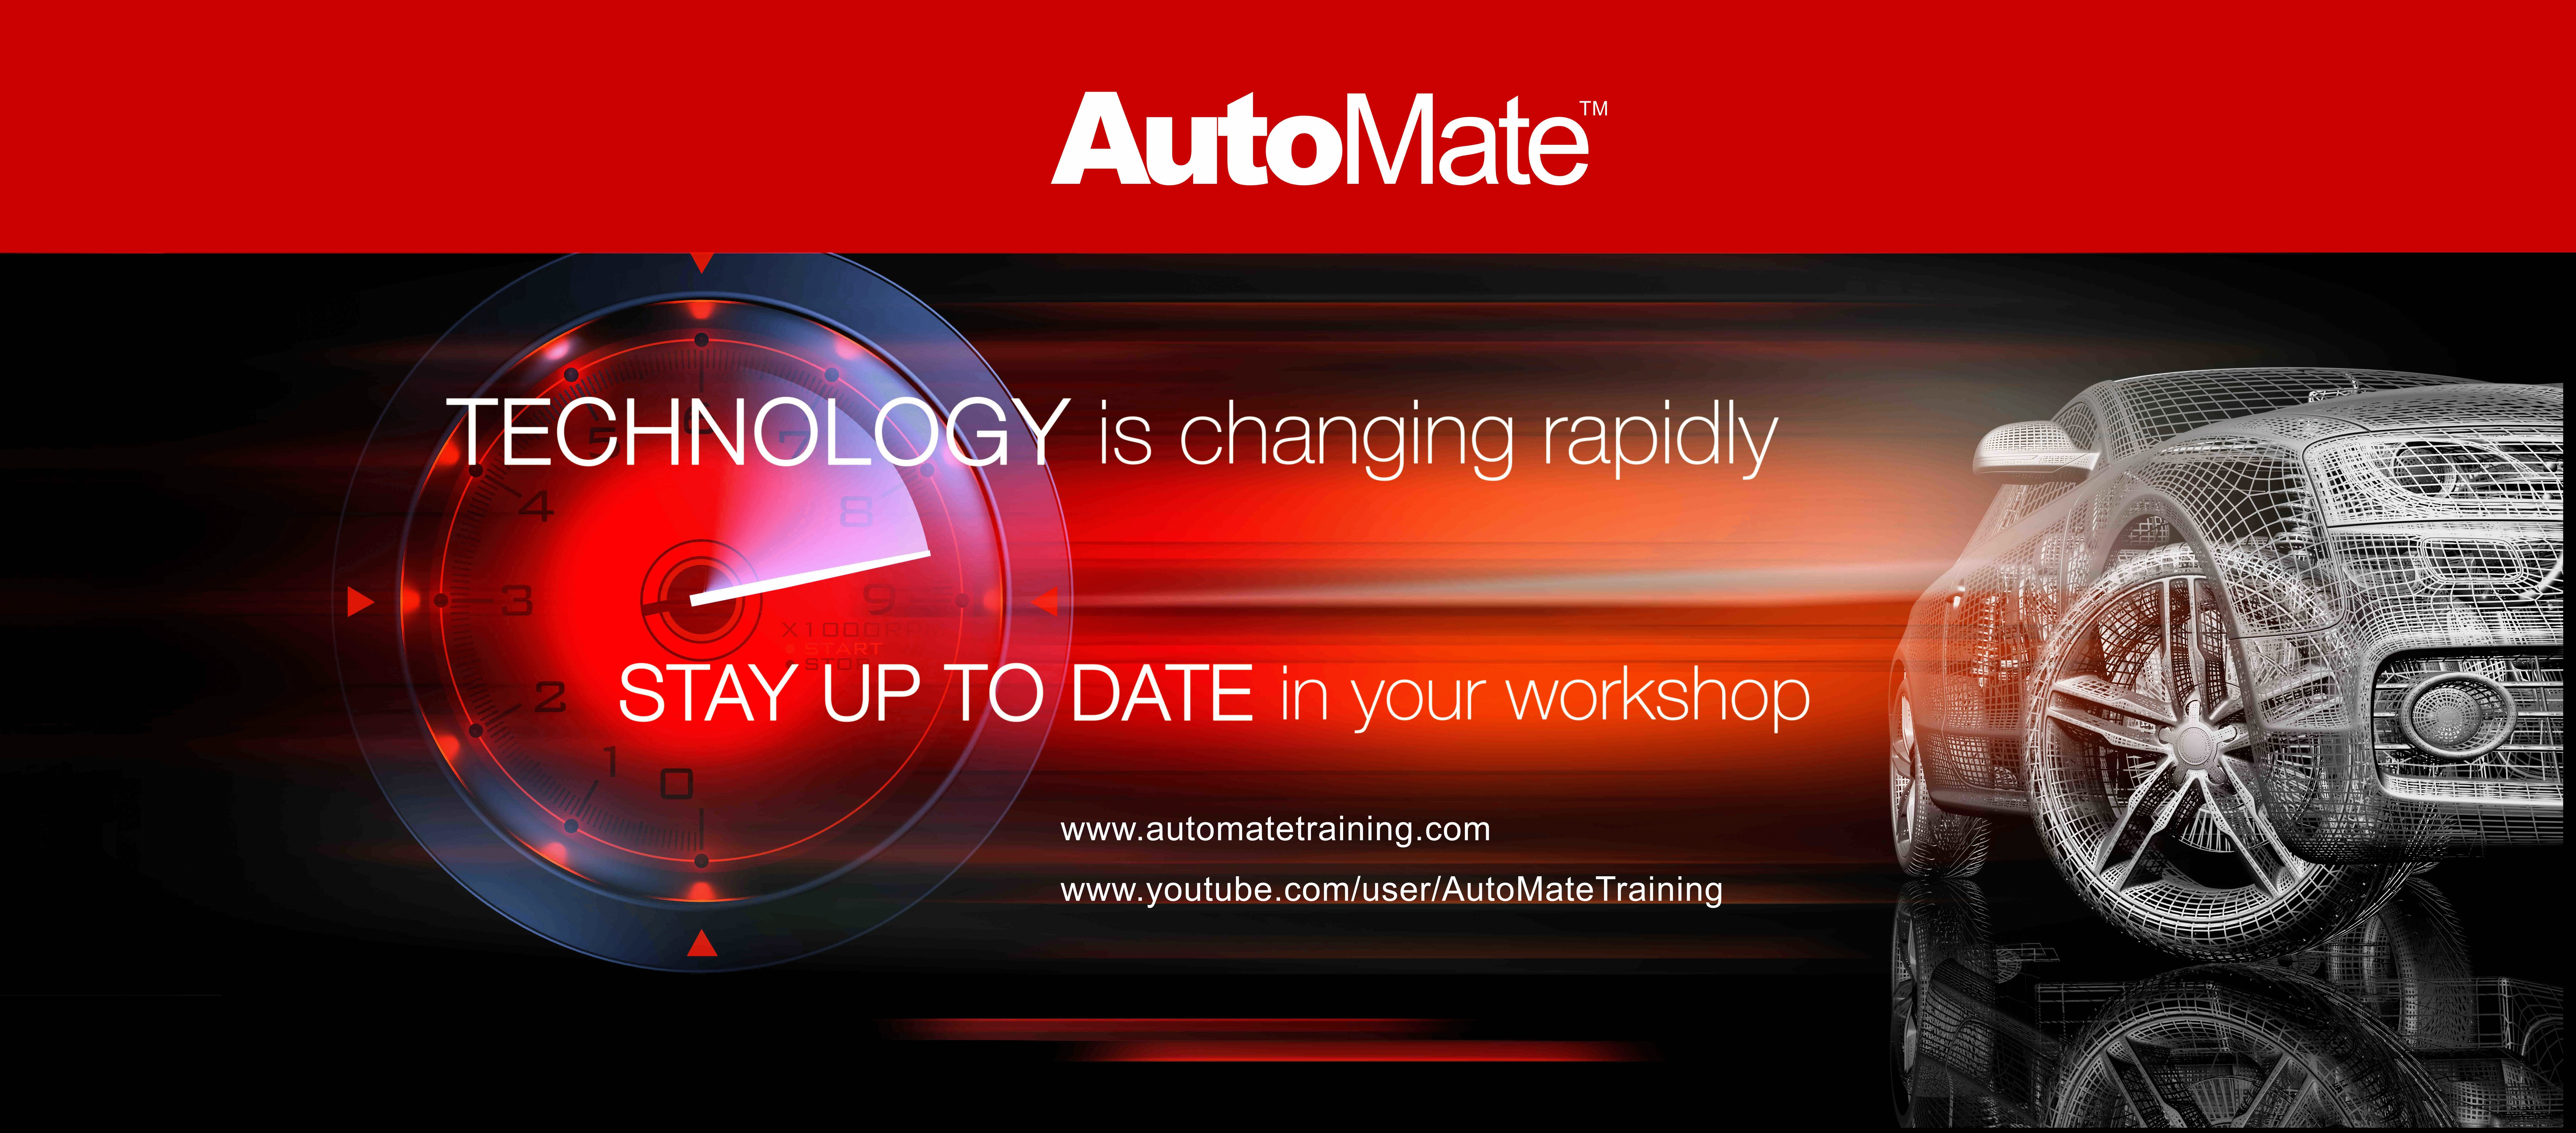 AutoMate Training | LinkedIn